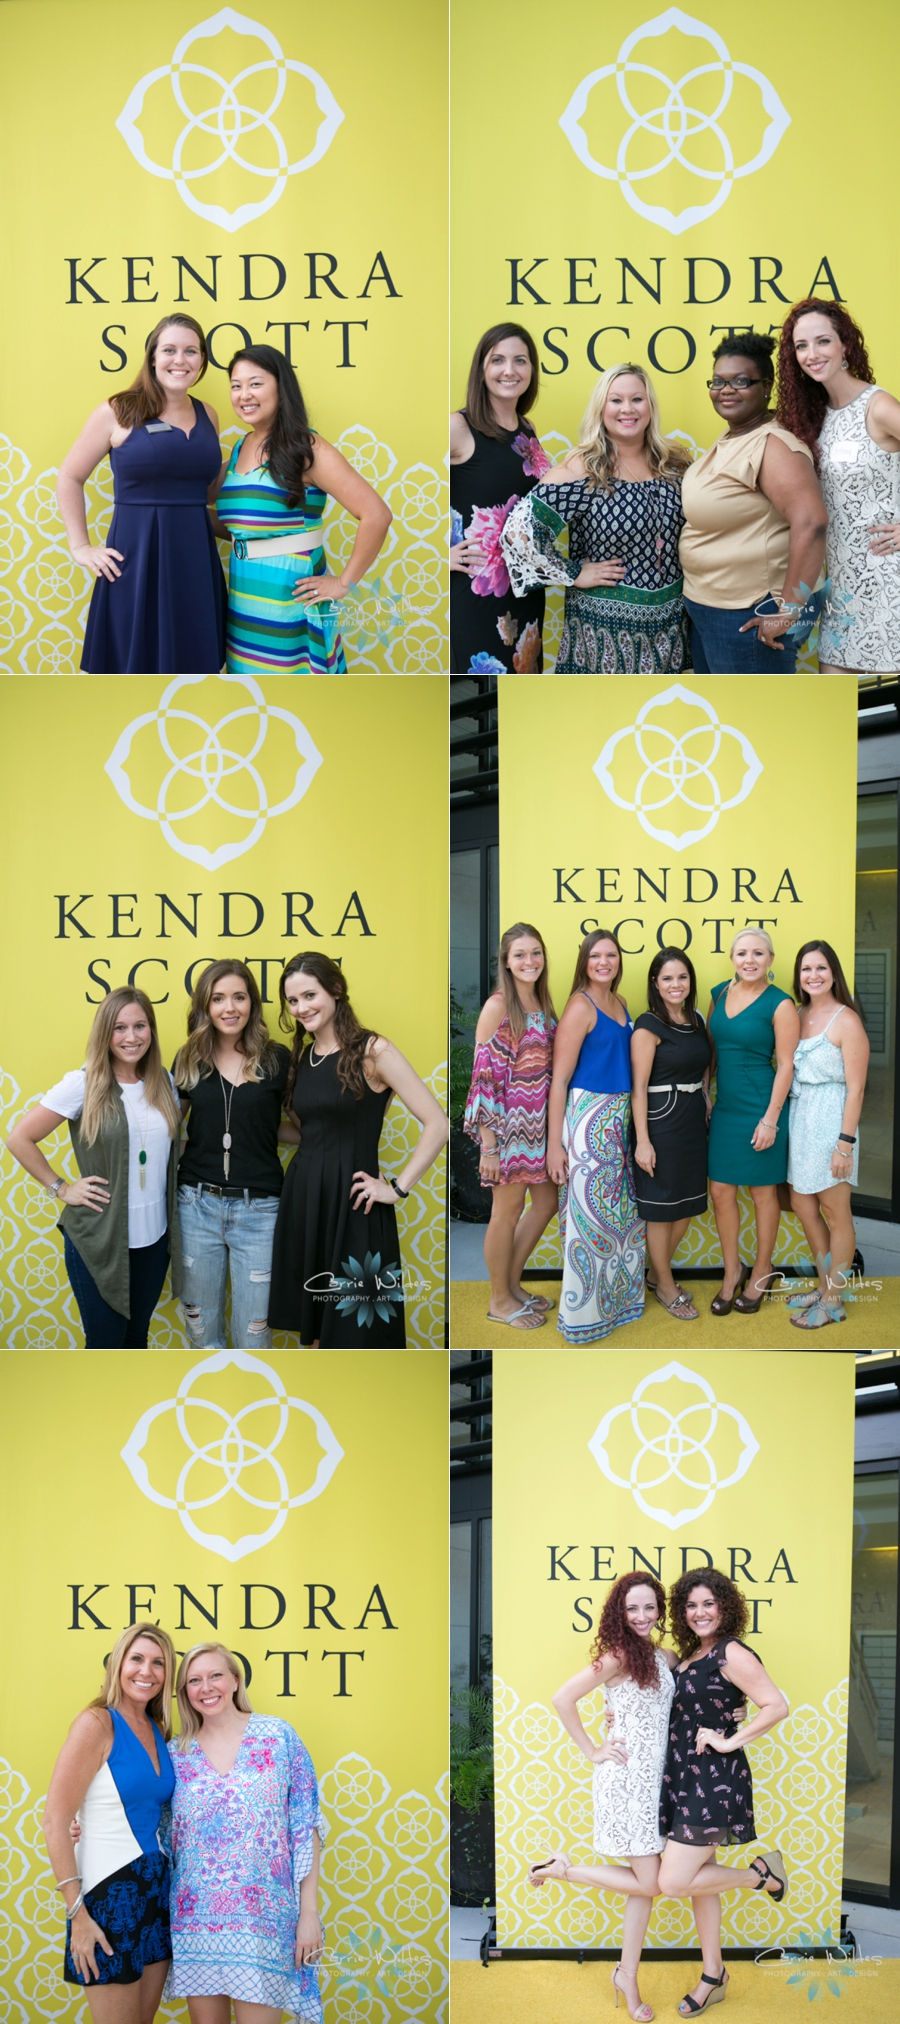 8_18_16 Kendra Scott Tampa Junior League Opening Party_0006.jpg